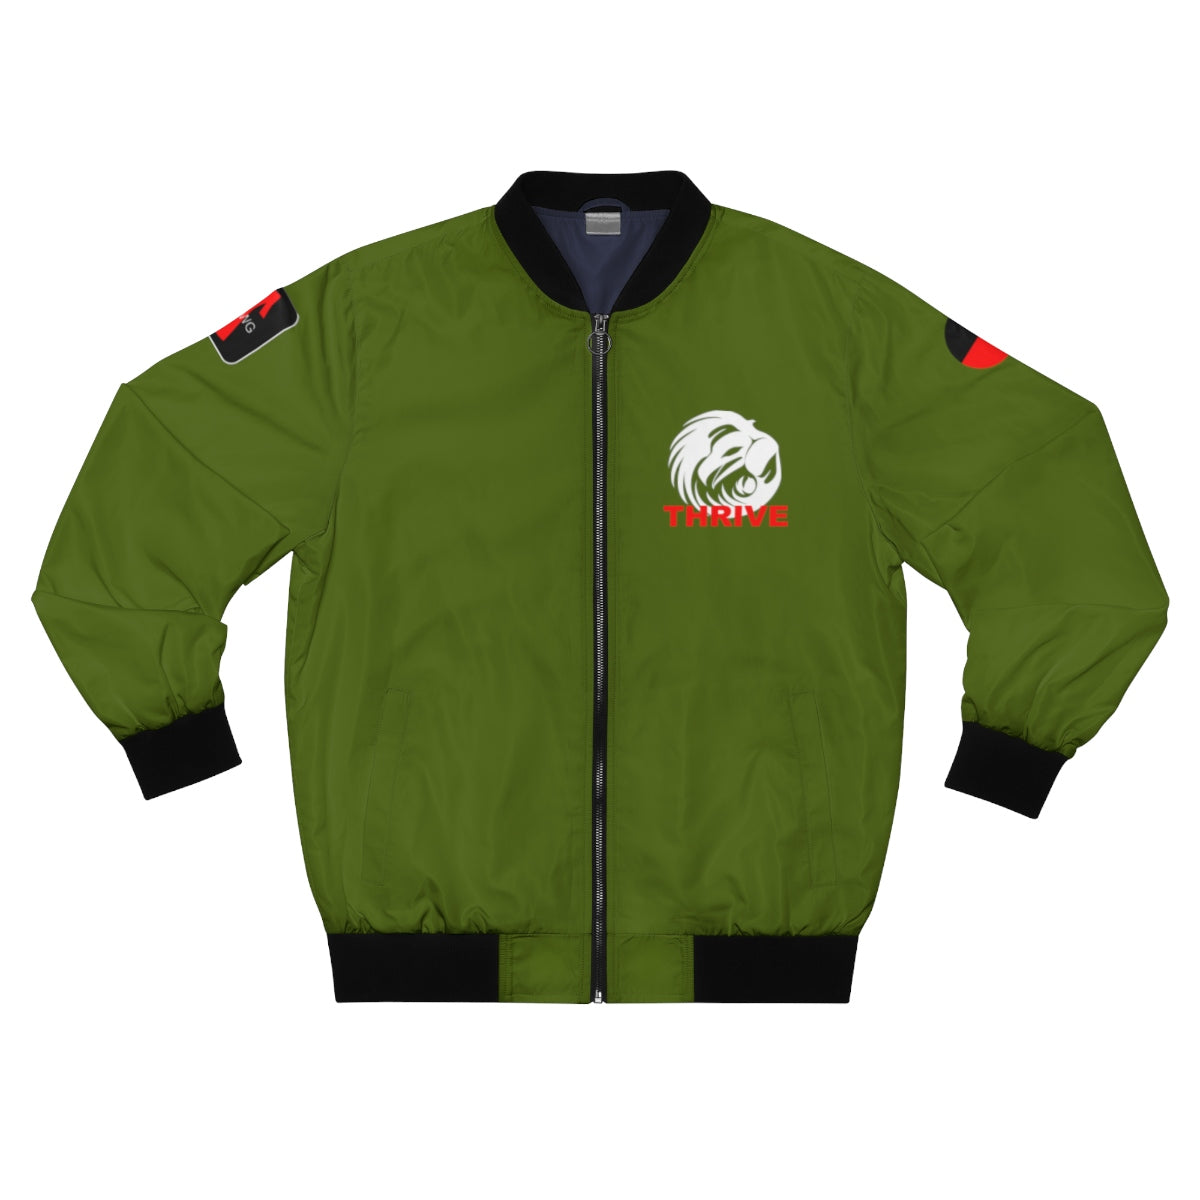 Men's Olive Green Thrive Bomber Jacket